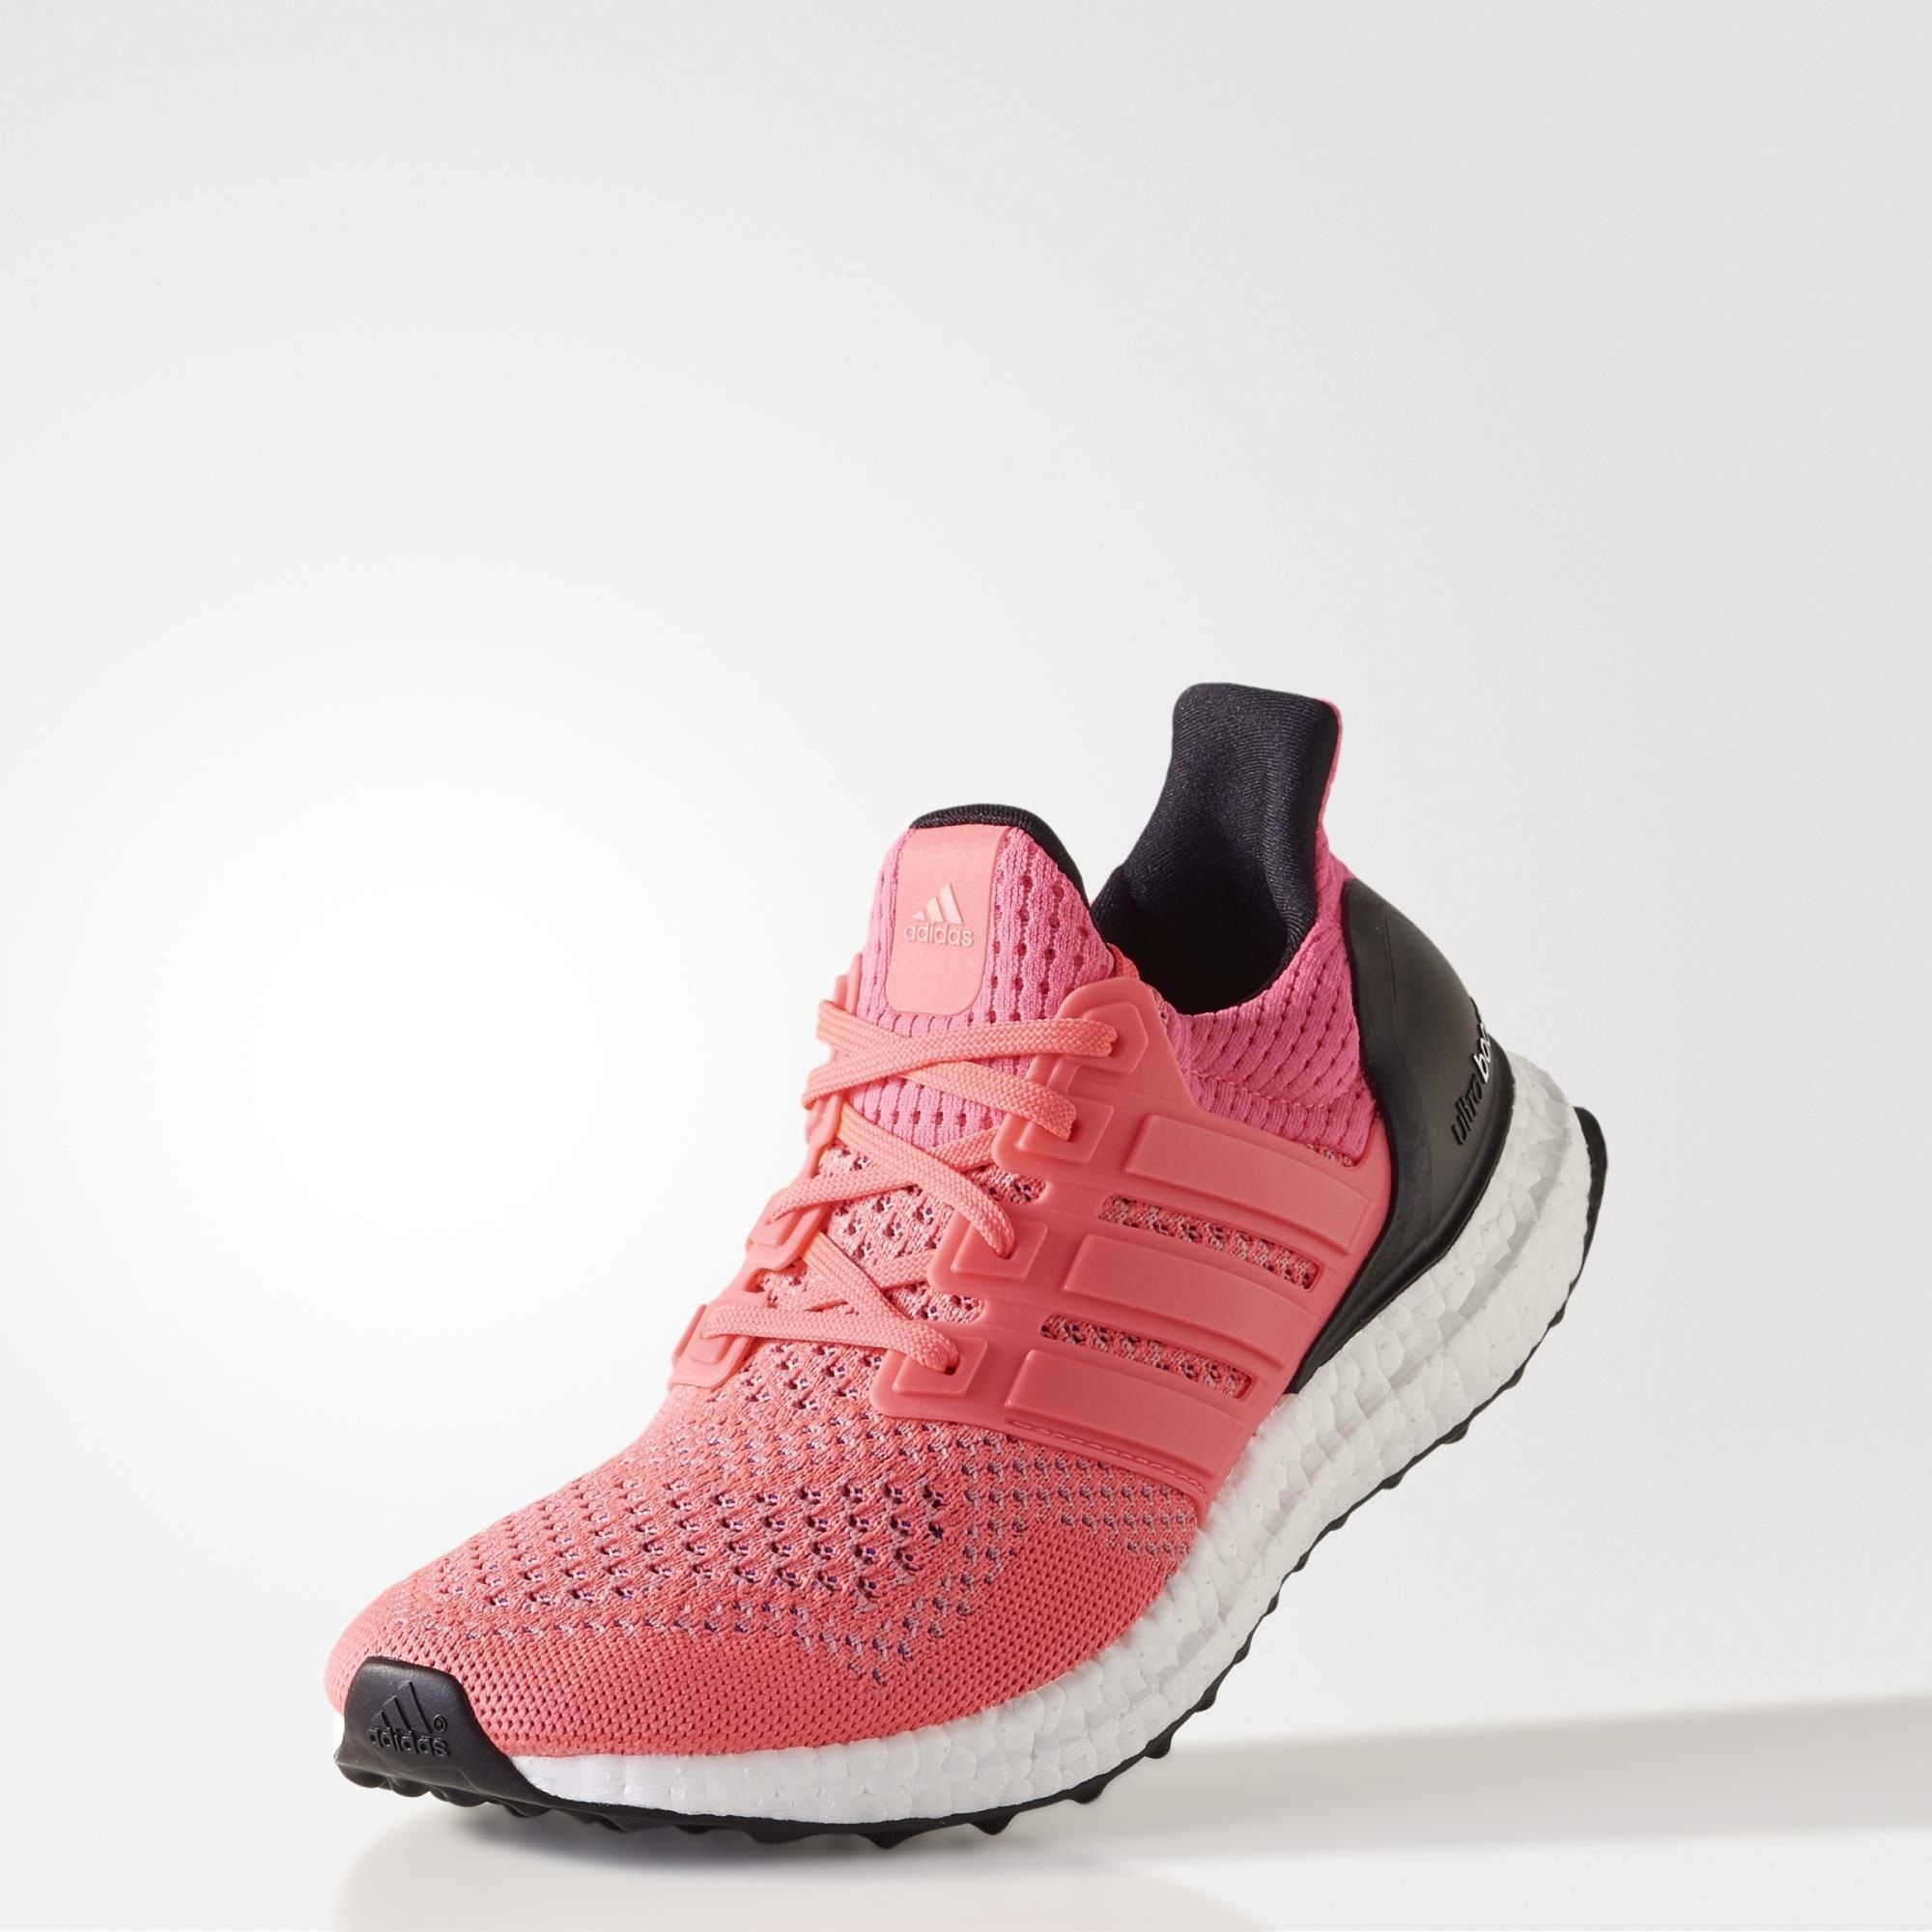 e64a7d53035 adidas Ultra Boost Shoes - Red